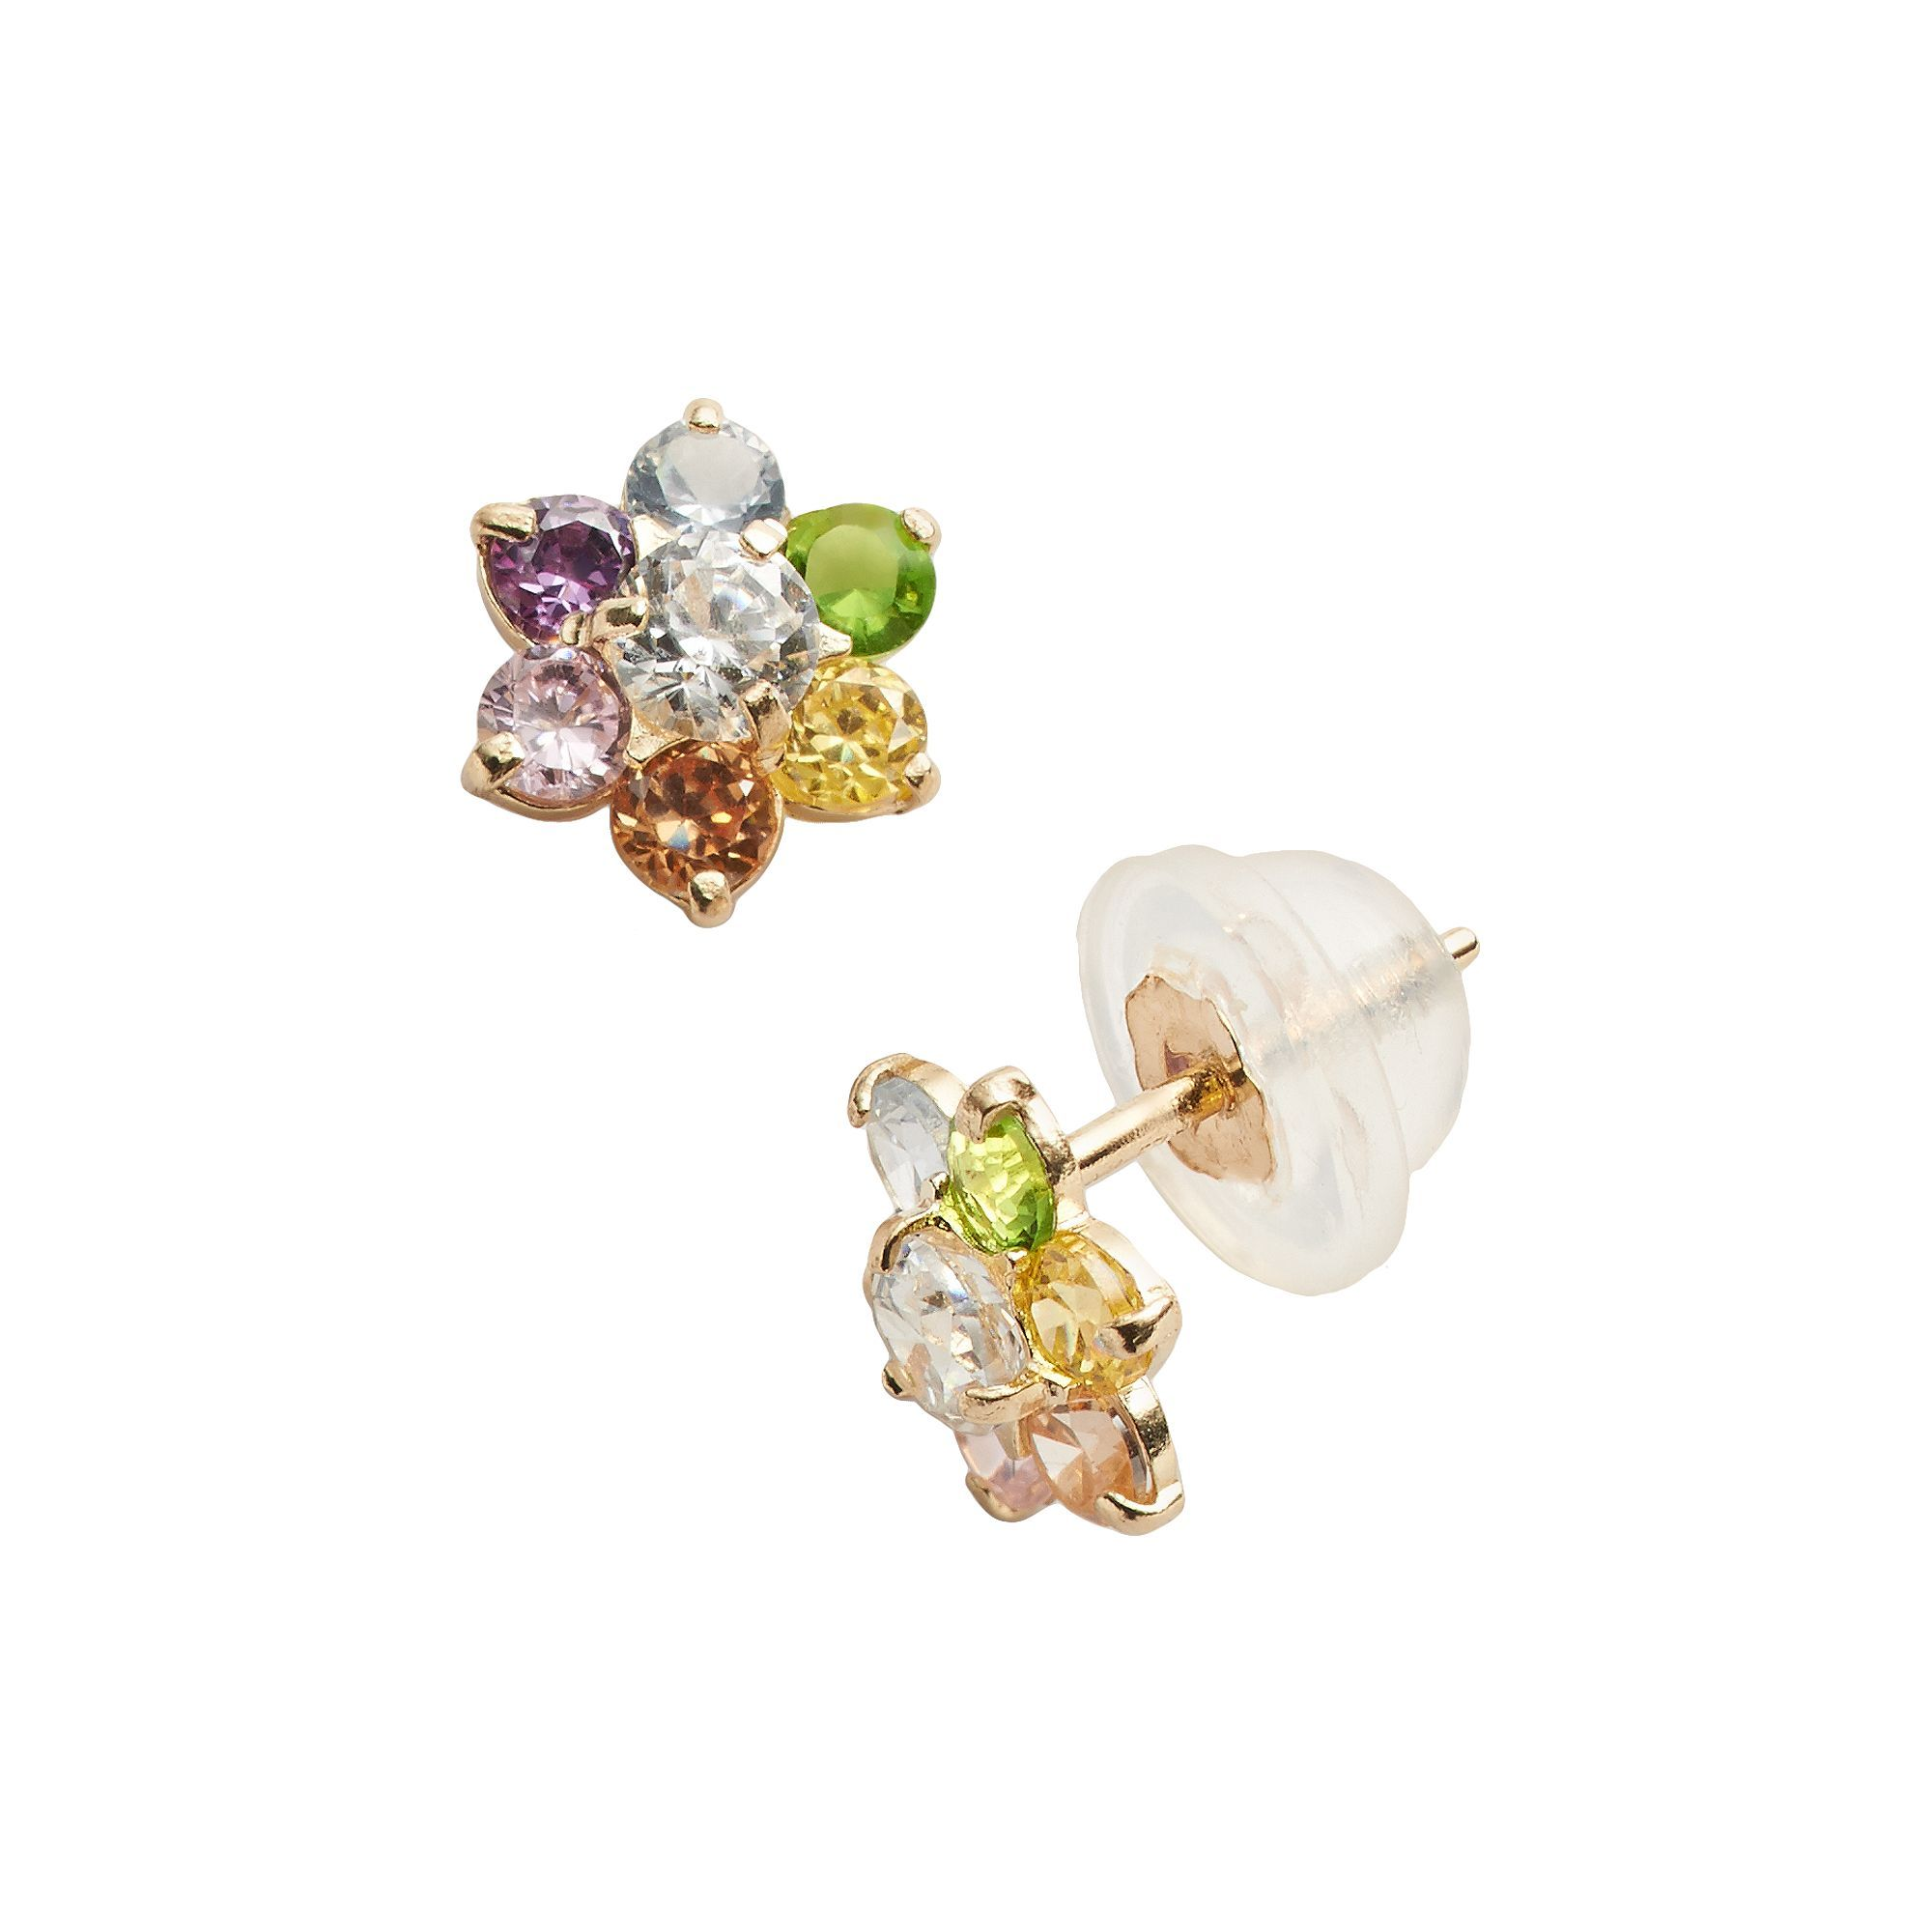 20976684d Junior Jewels 14k Gold Cubic Zirconia Flower Stud Earrings - Kids, Girl's,  multicolor